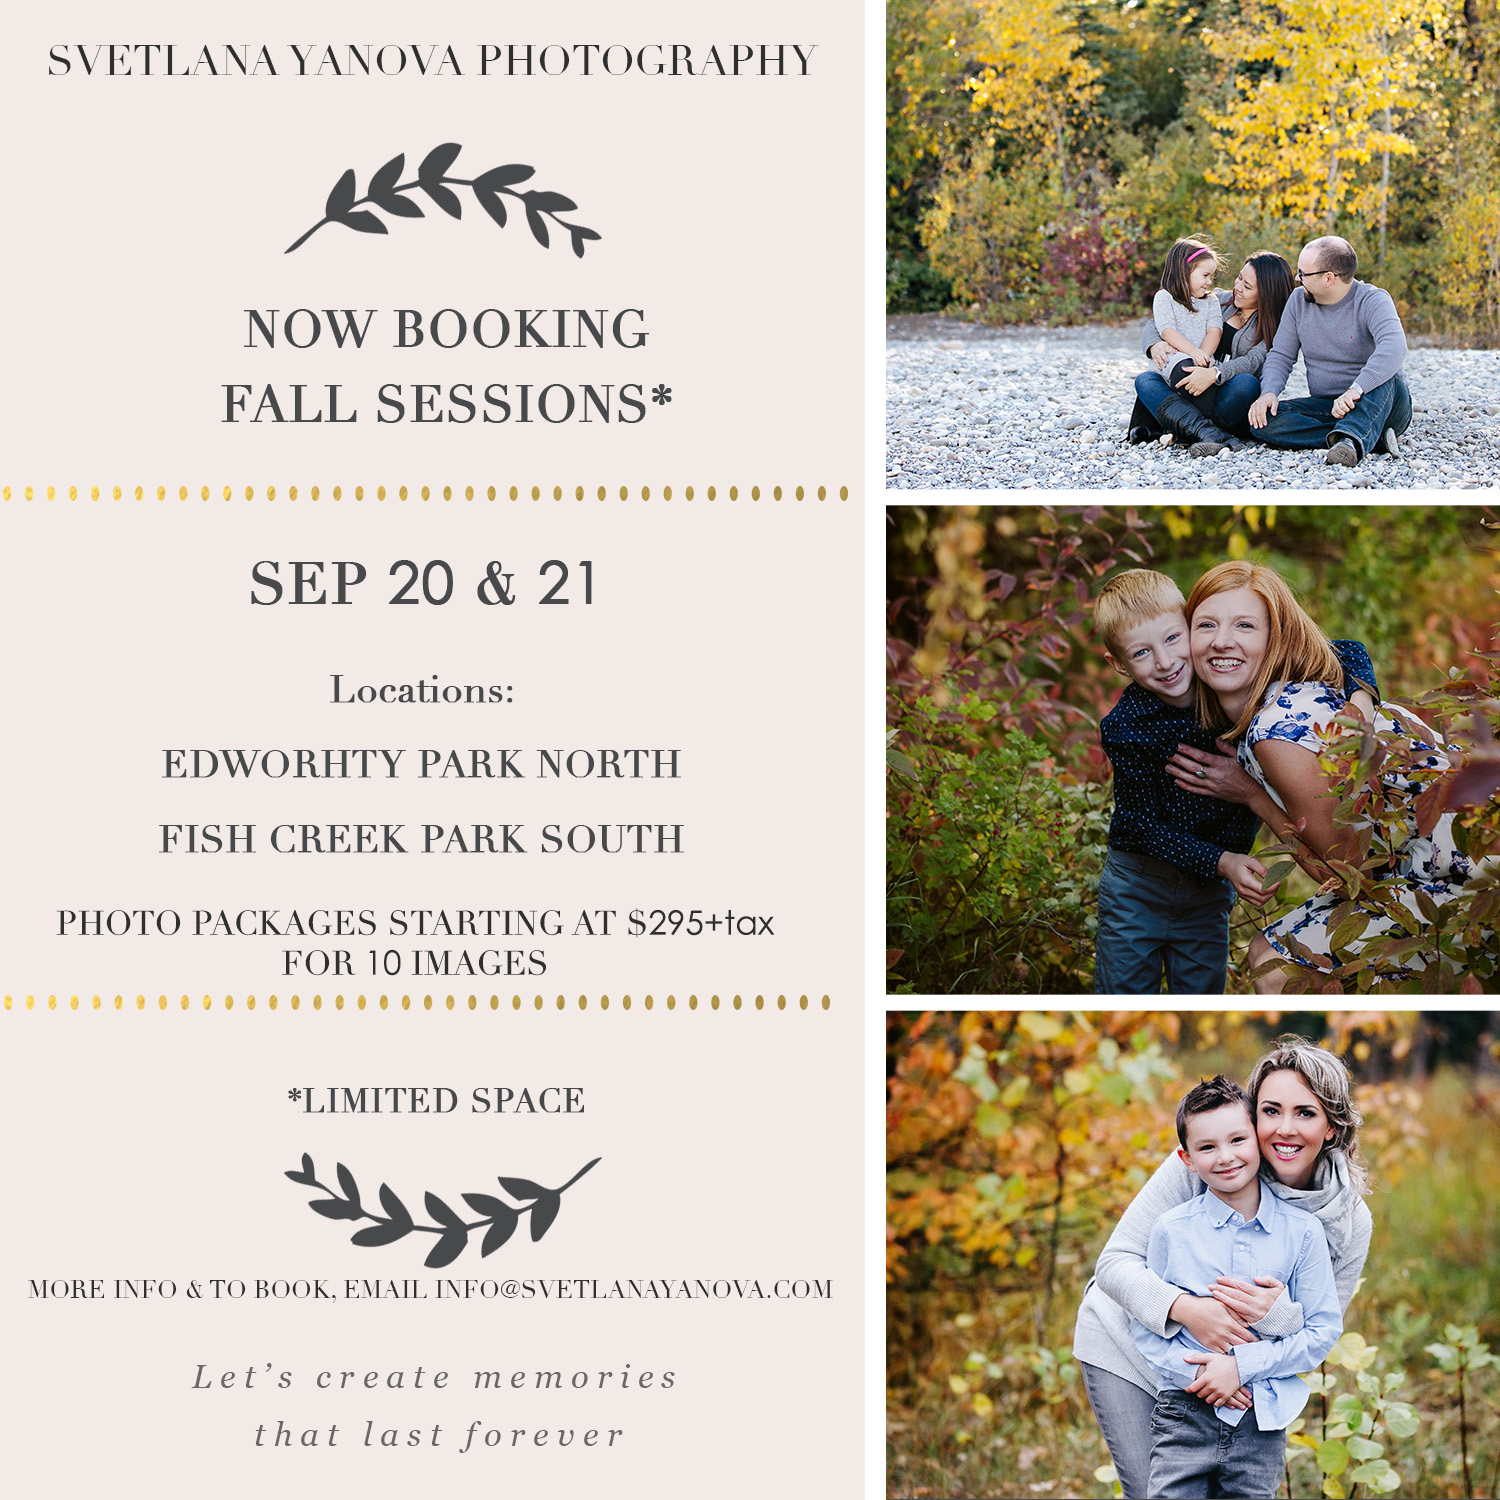 fall sessions calgary, svetlana yanova, mini sessions calgary, fall mini sessions, fall mini sessions promo calgary